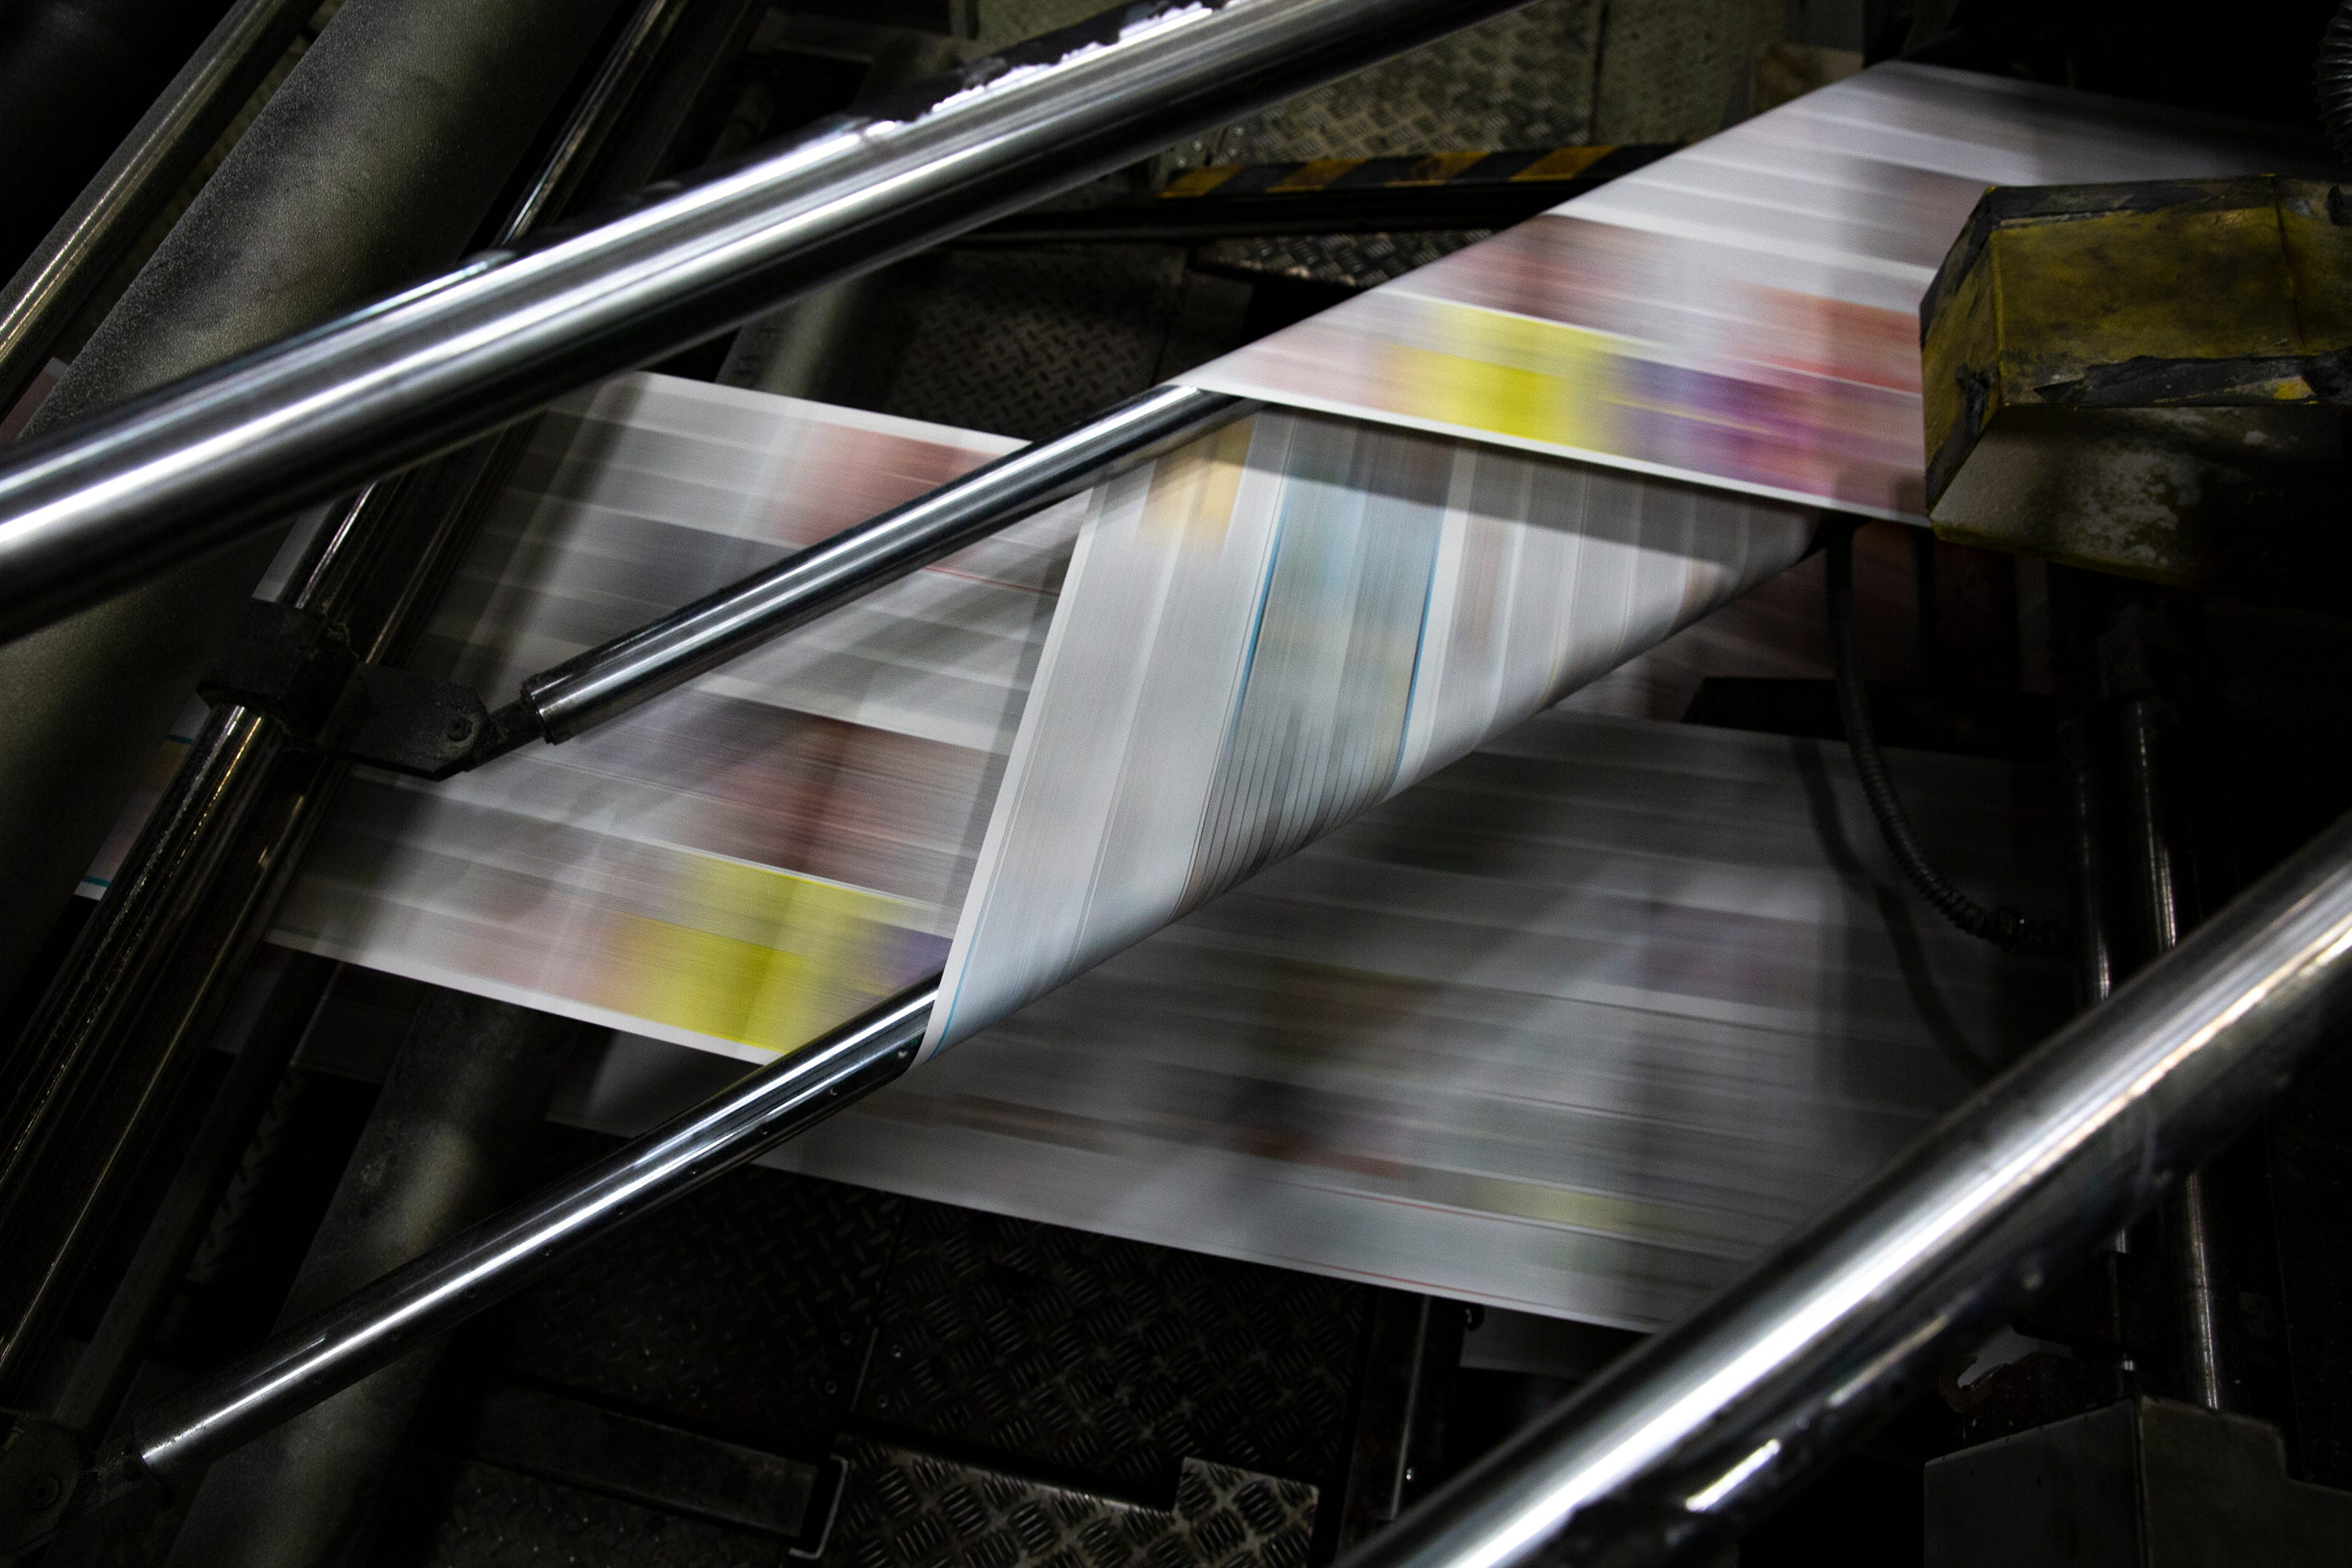 The newspaper is printed during a press run on Wednesday, Feb. 12, 2020, at the Naples Daily News.